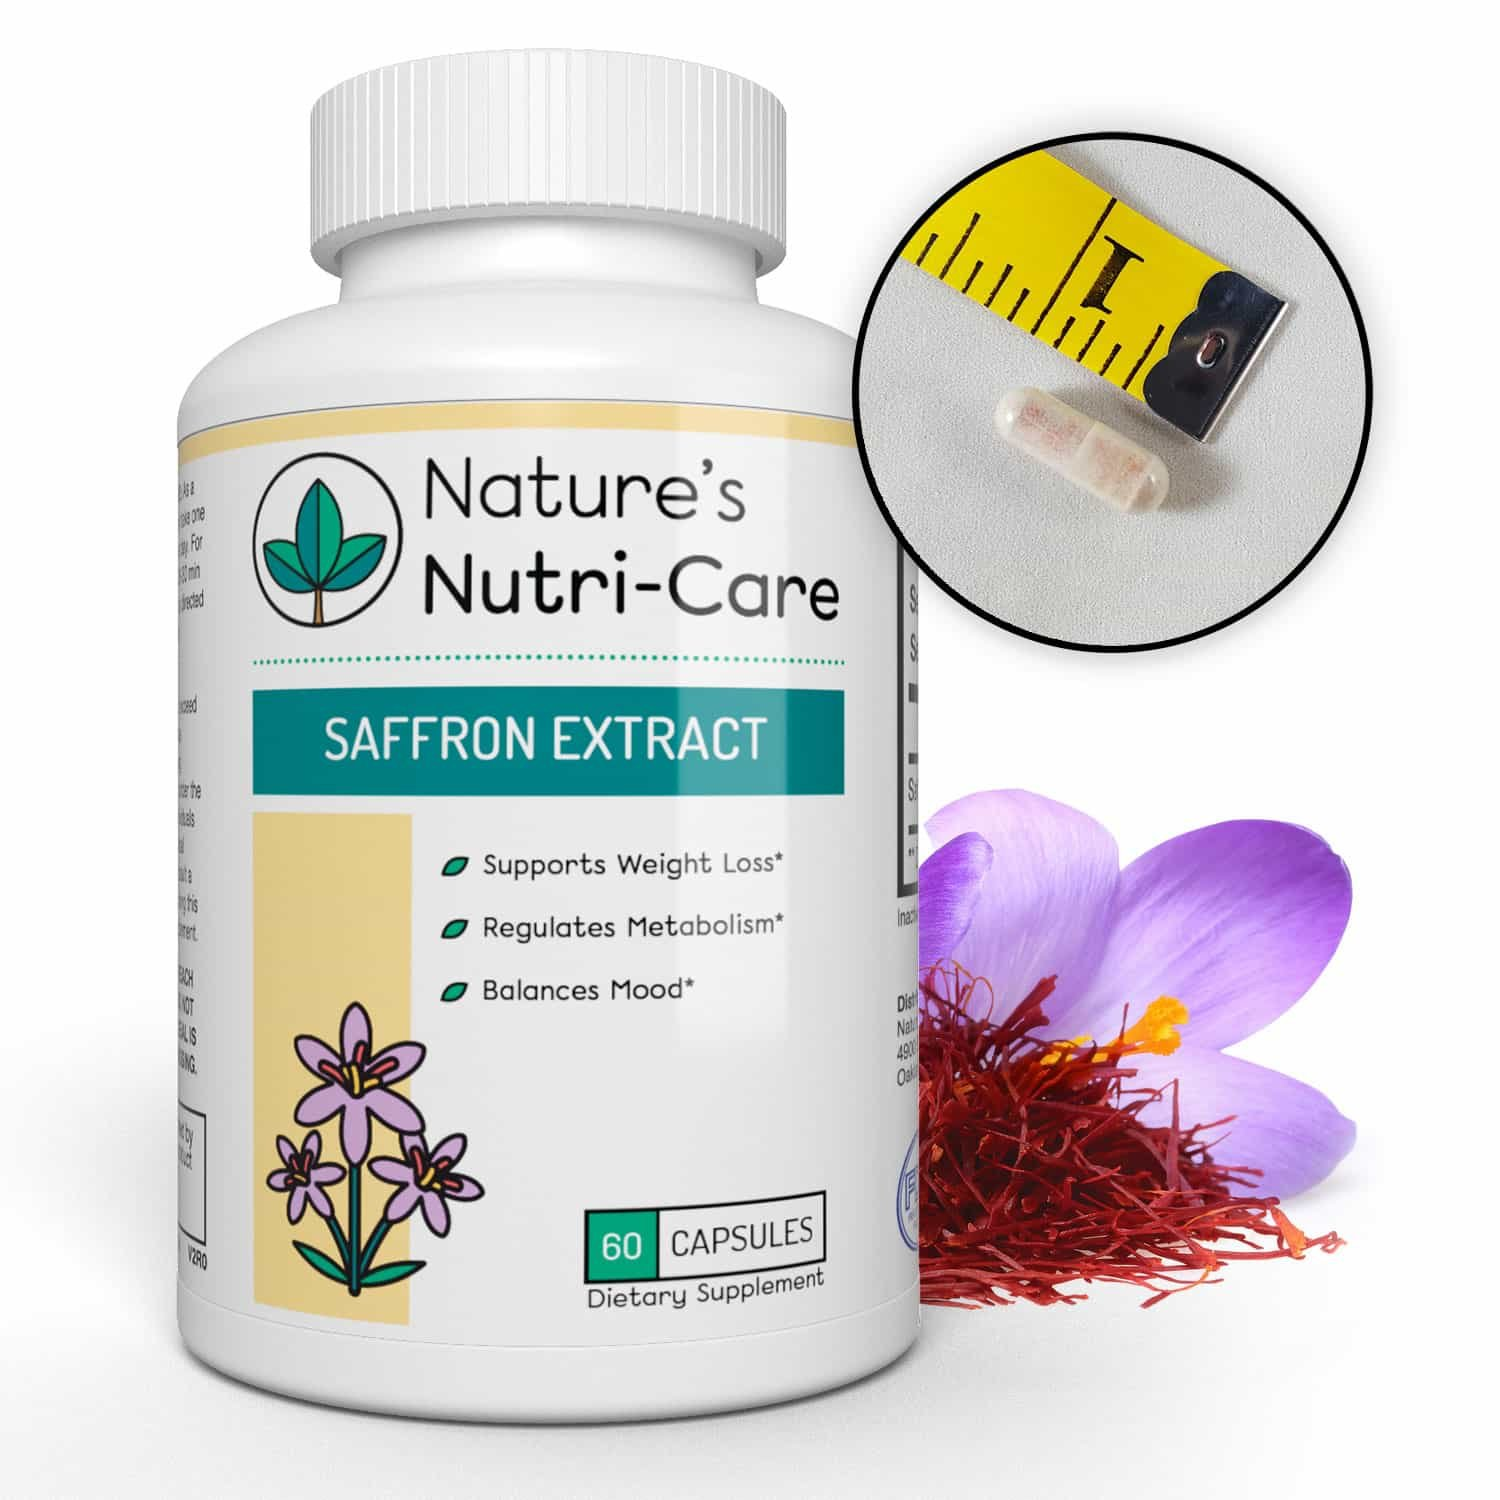 Nature's Nutri-Care Pure Saffron Extract - 88.5 mg - 60 or 180 Capsules - Appetite Suppressant and Metabolism Booster Weight Loss Supplement - Made in USA, 180